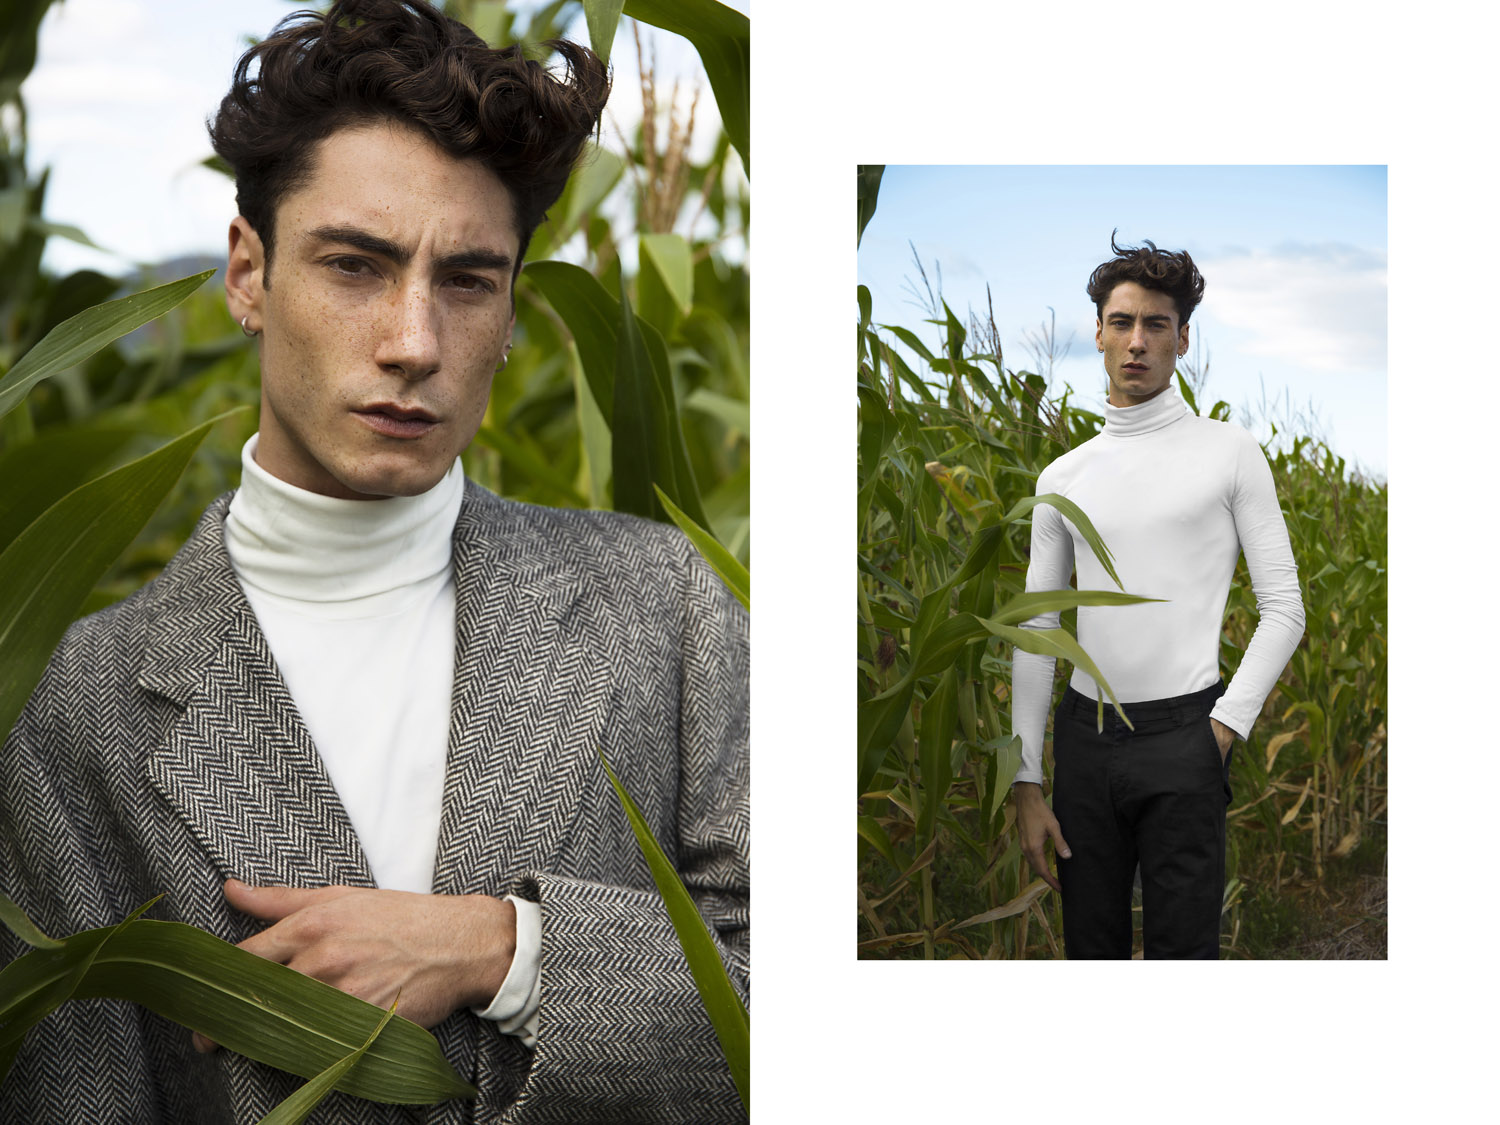 OUTSIDE by Marco Imperatore for CHASSEUR MAGAZINE